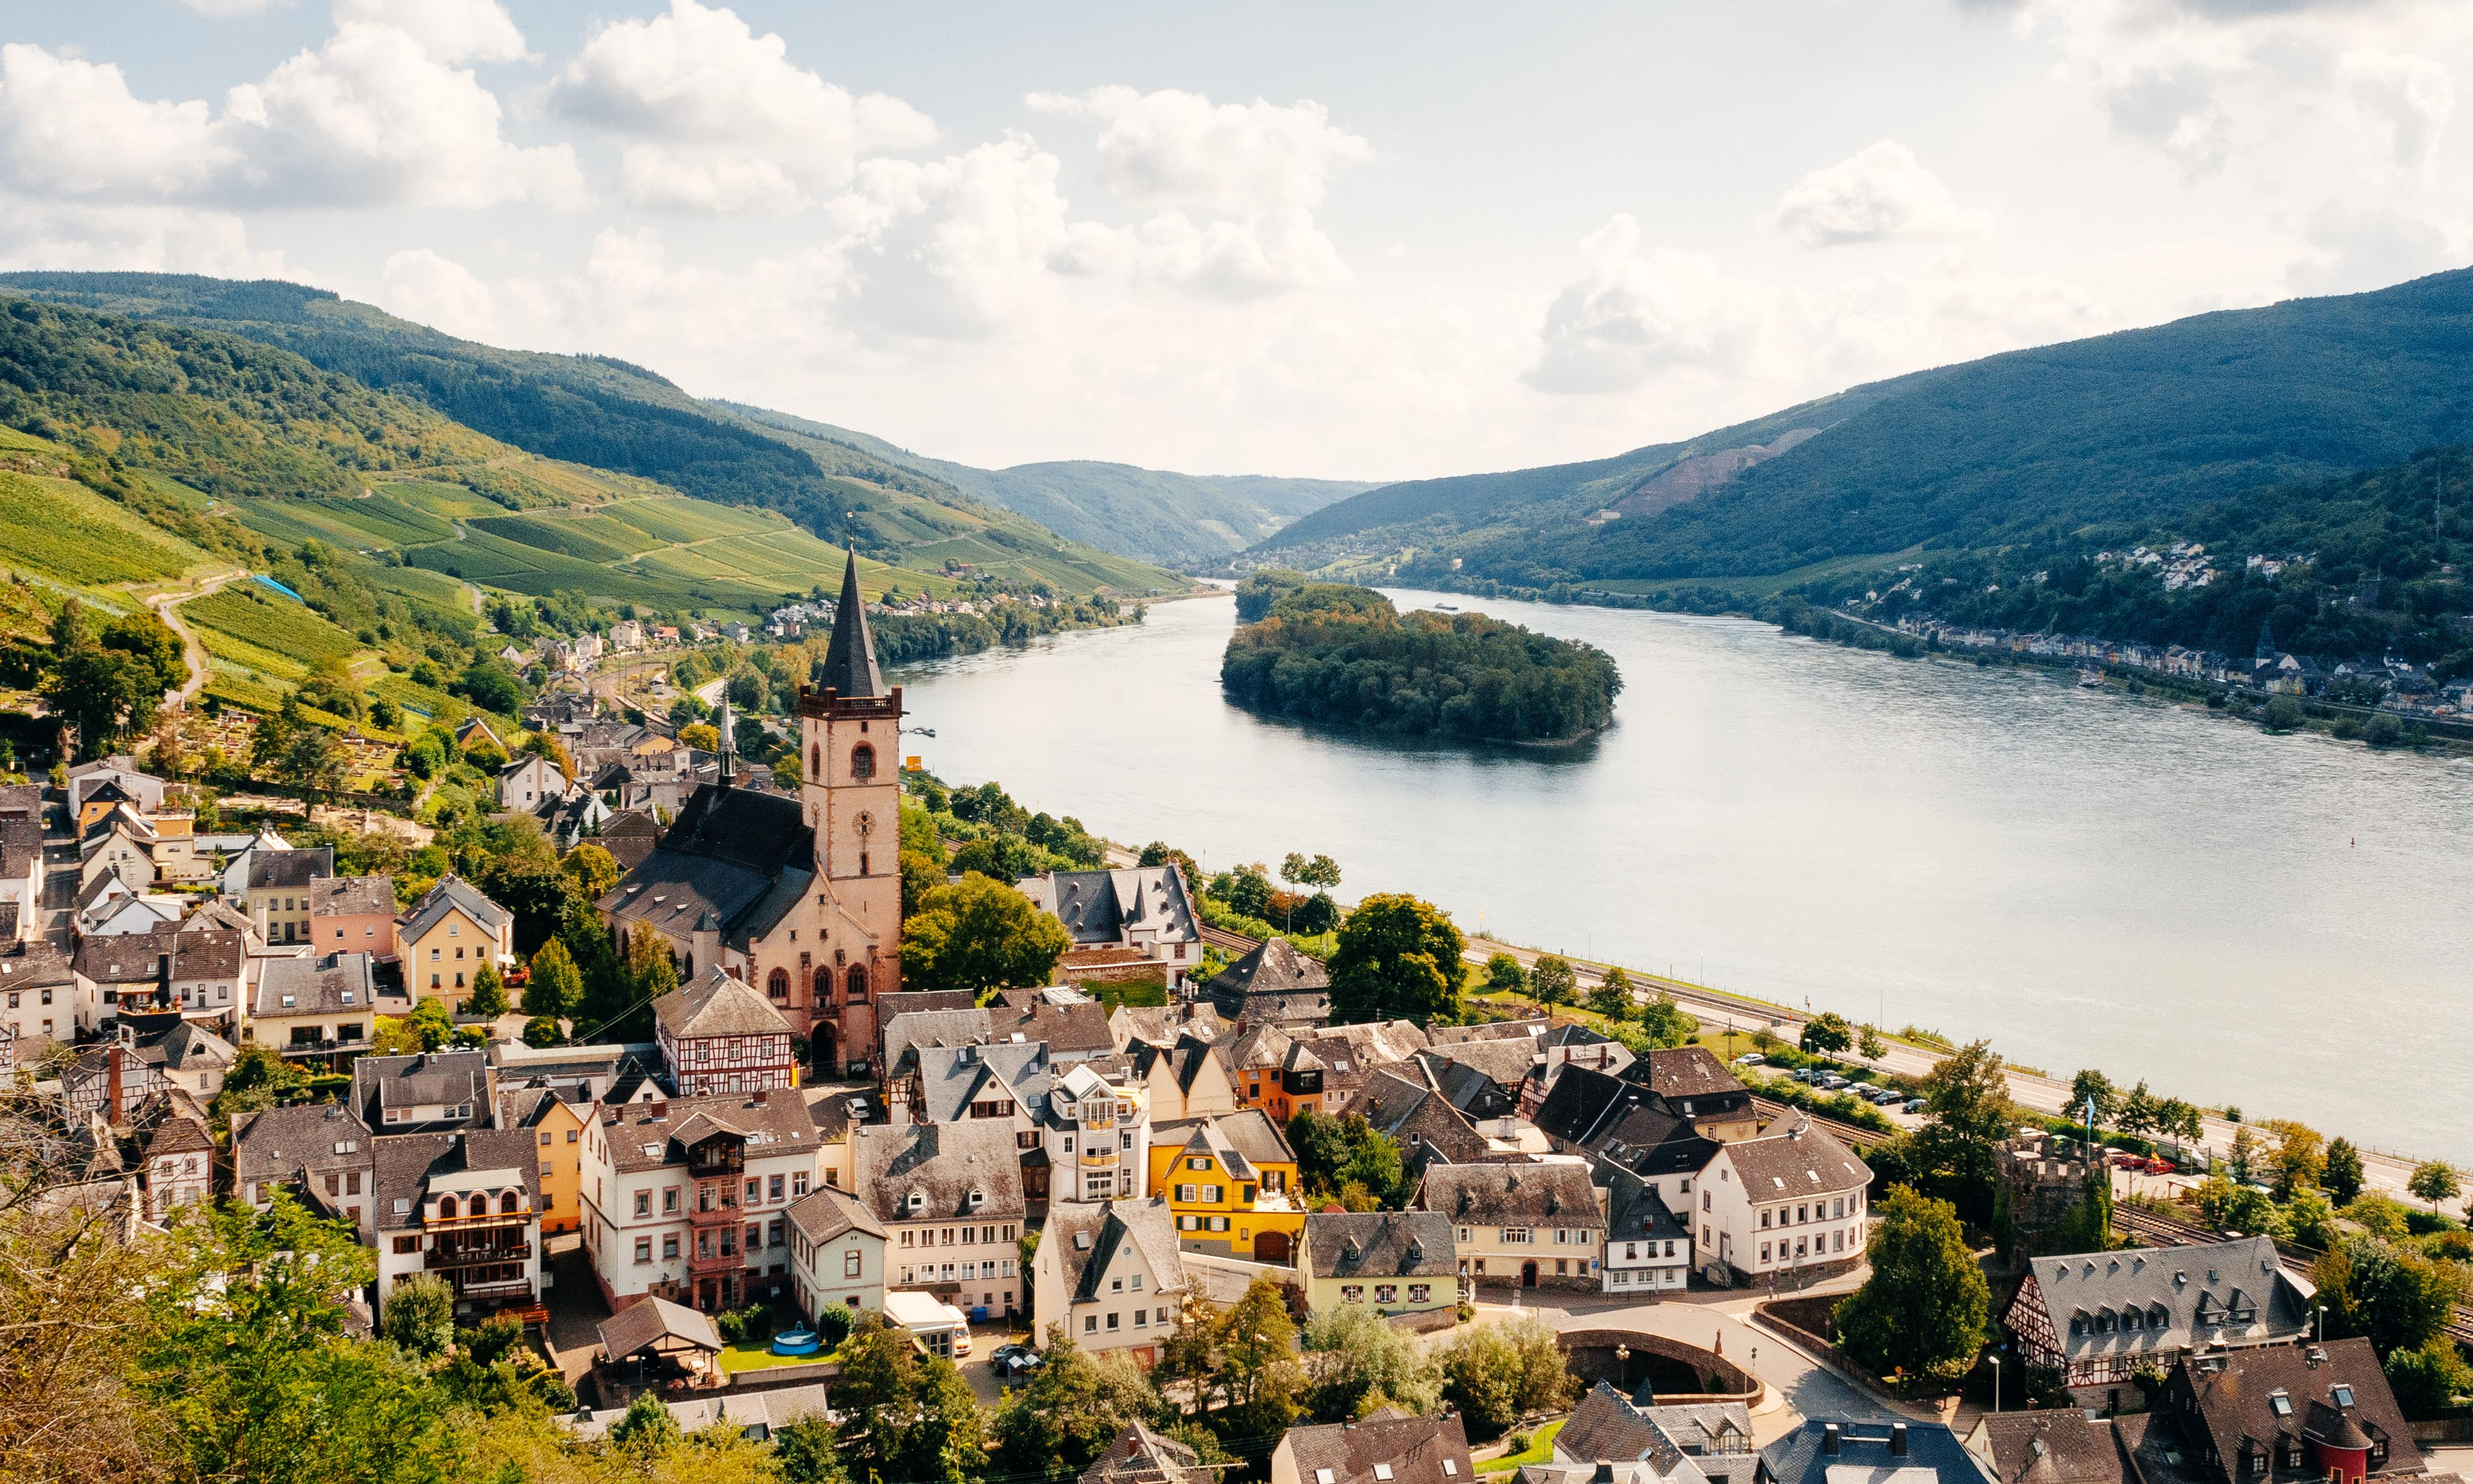 A Rhine romance: following the mighty river